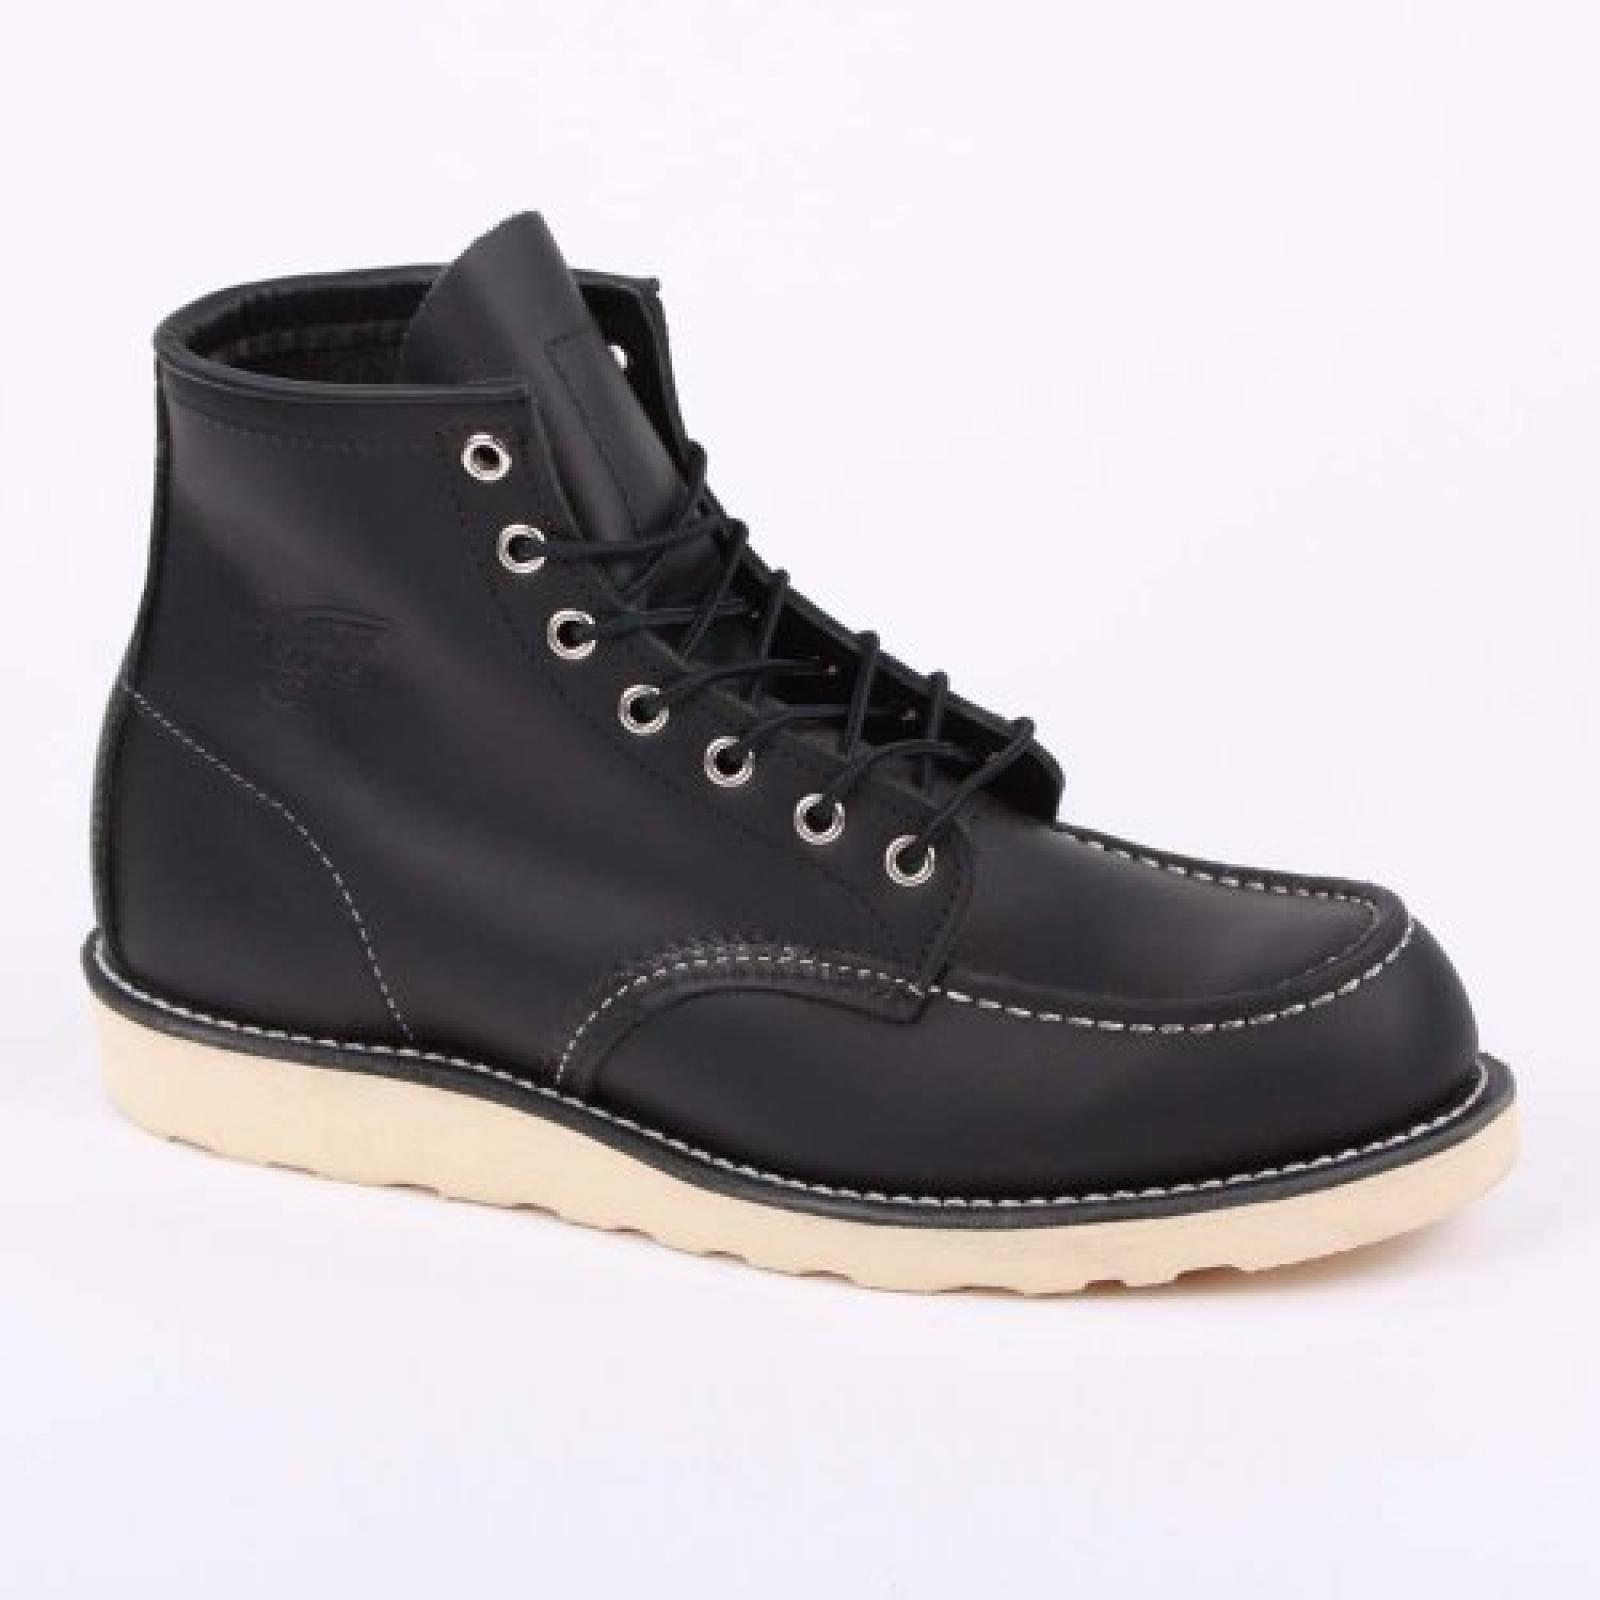 Red Wing Moc Toe Herren Boots